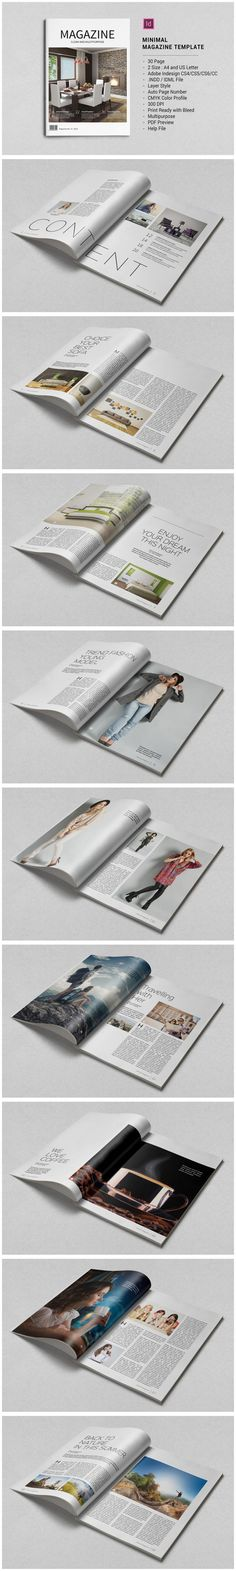 #magazine #design from tujuhbenua | DOWNLOAD: https://creativemarket.com/tujuhbenua/595561-Minimal-Magazine-Template?u=zsoltczigler